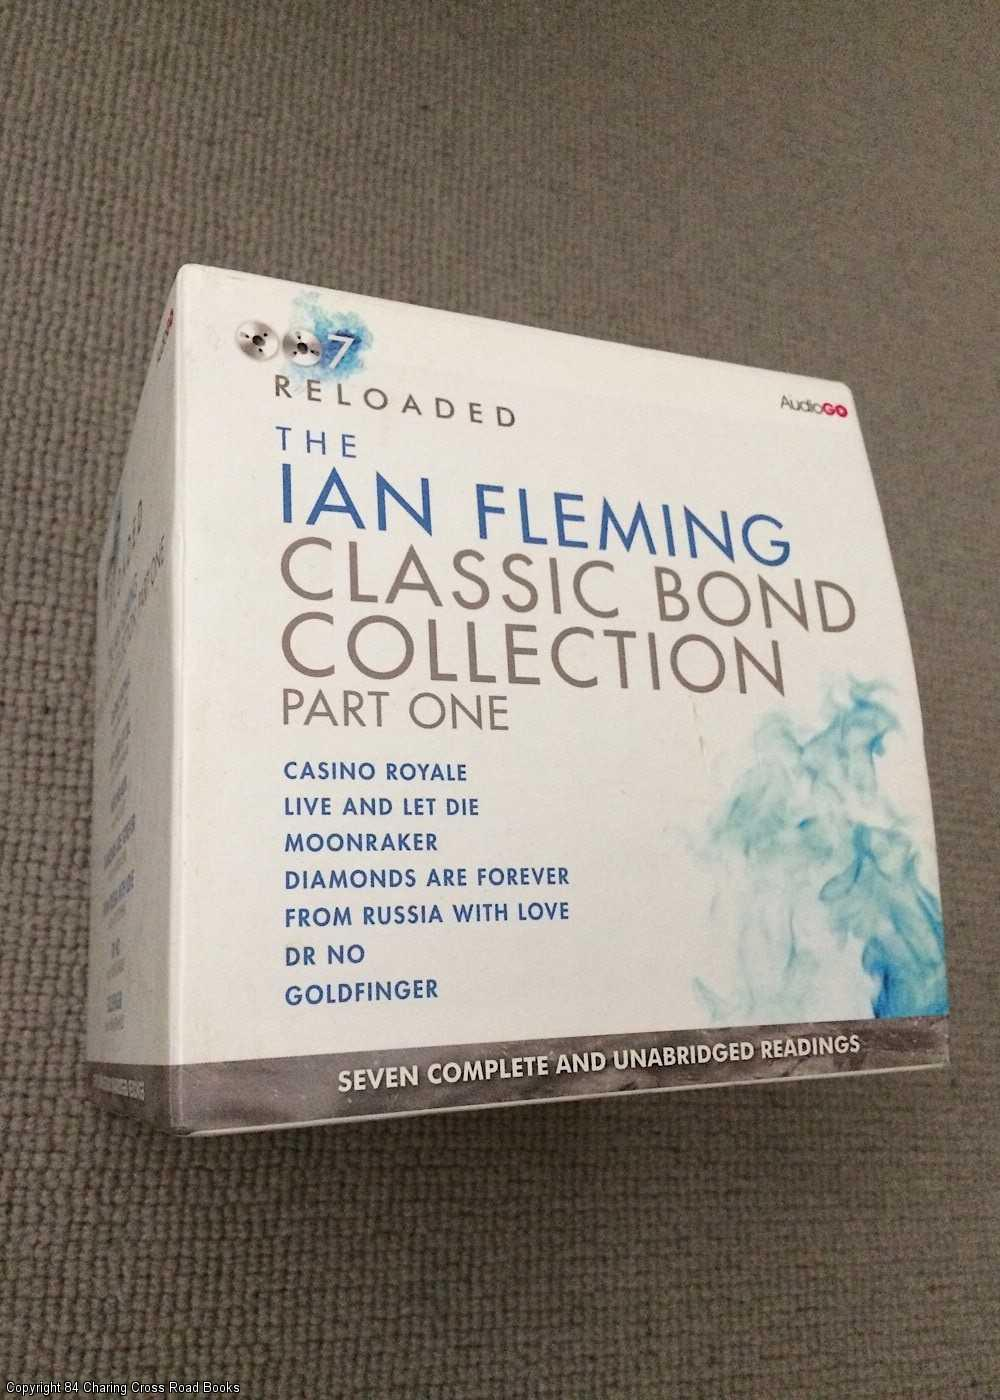 FLEMING, IAN - The Ian Fleming Classic Bond Collection - Part One